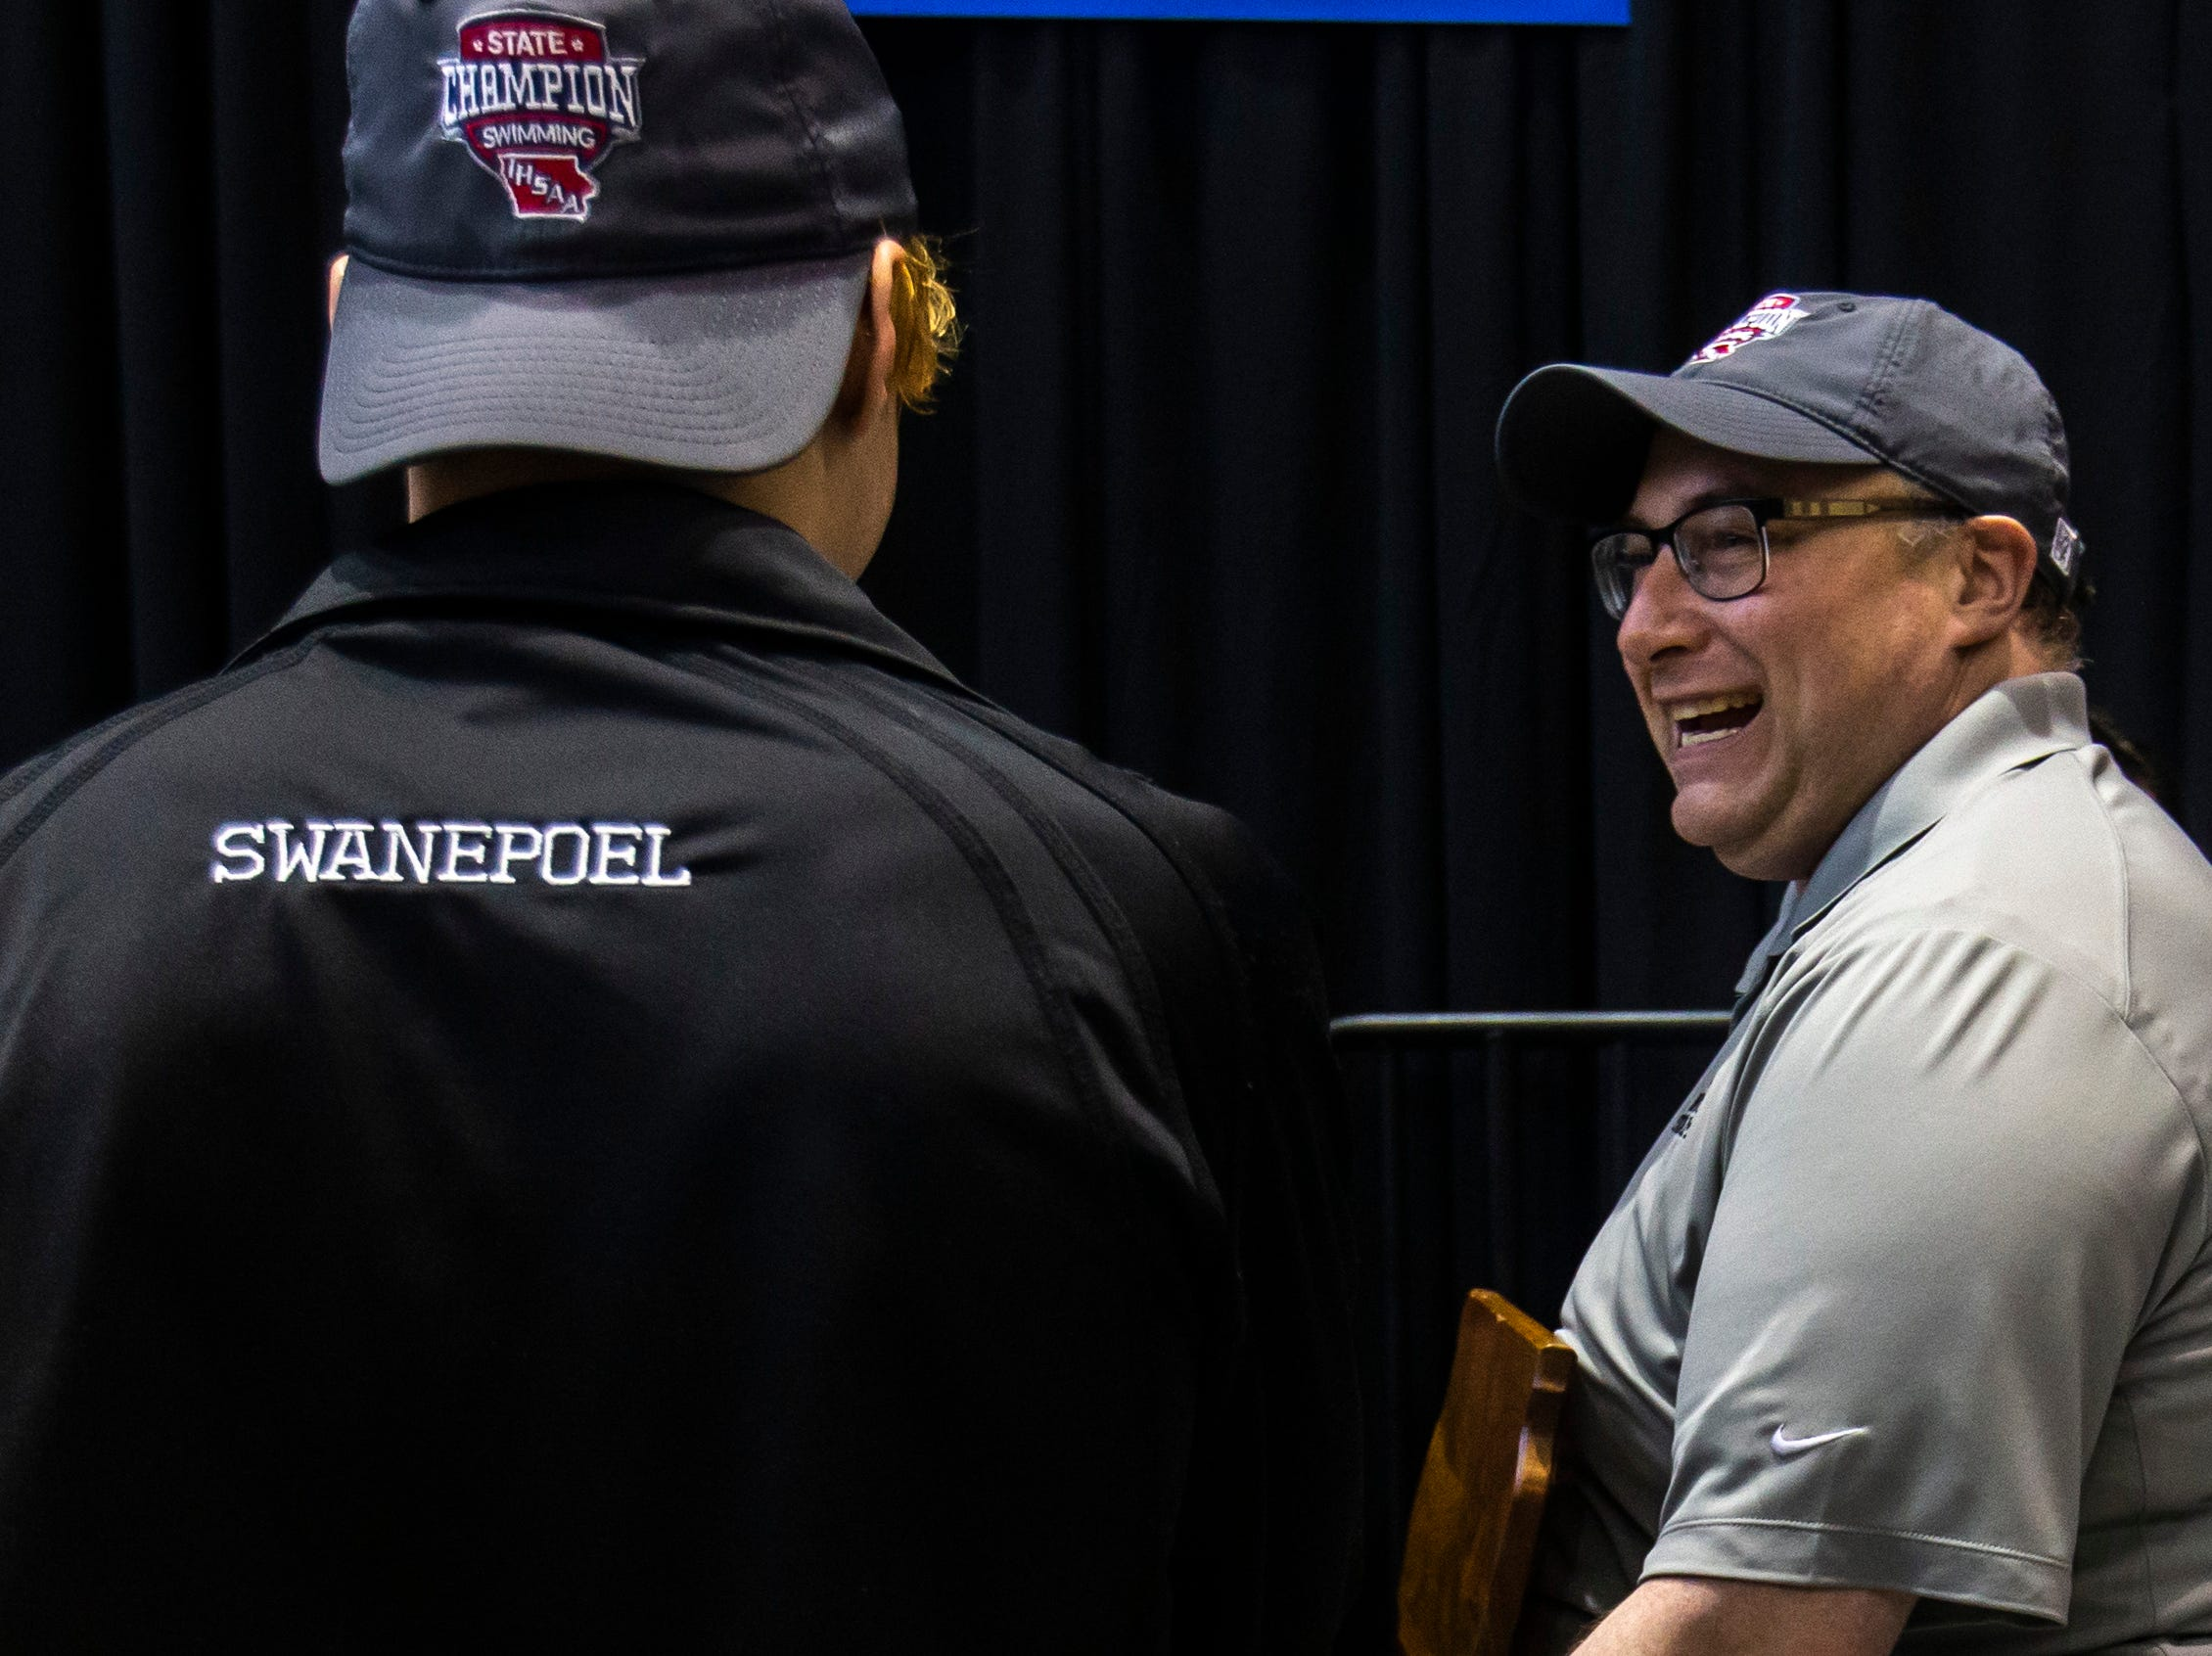 Ankeny coach Justin Crouch talks with swimmers while carrying the coach of the year trophy after the Iowa boys' state swimming regional championship meet on Saturday, Feb. 9, 2019 at Campus Recreation and Wellness Center on the University of Iowa campus in Iowa City, Iowa.